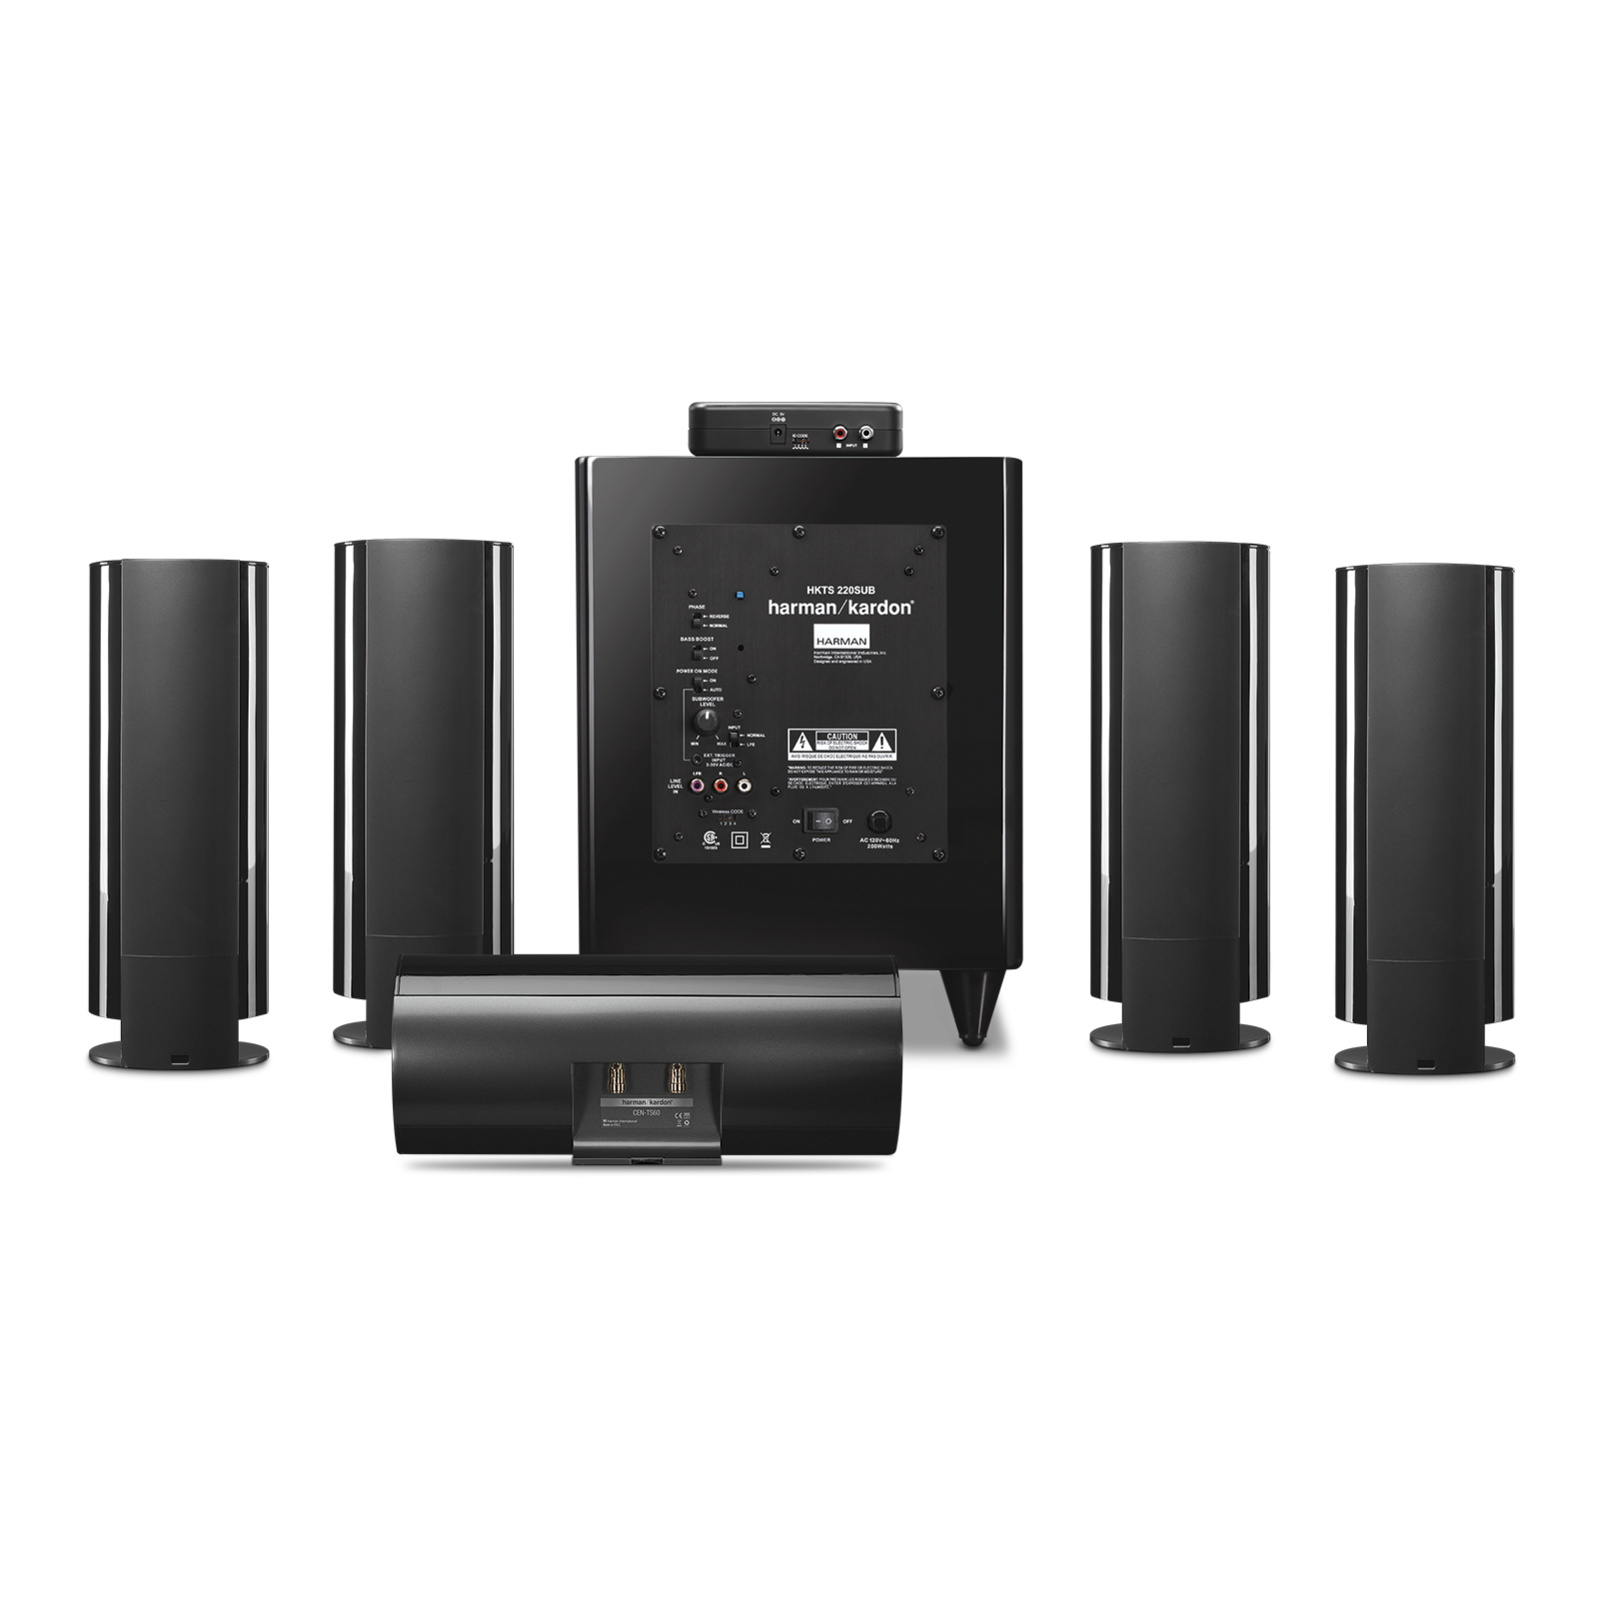 HKTS 65 - Black - A 5.1-channel, home theater speaker system with wireless subwoofer - Back